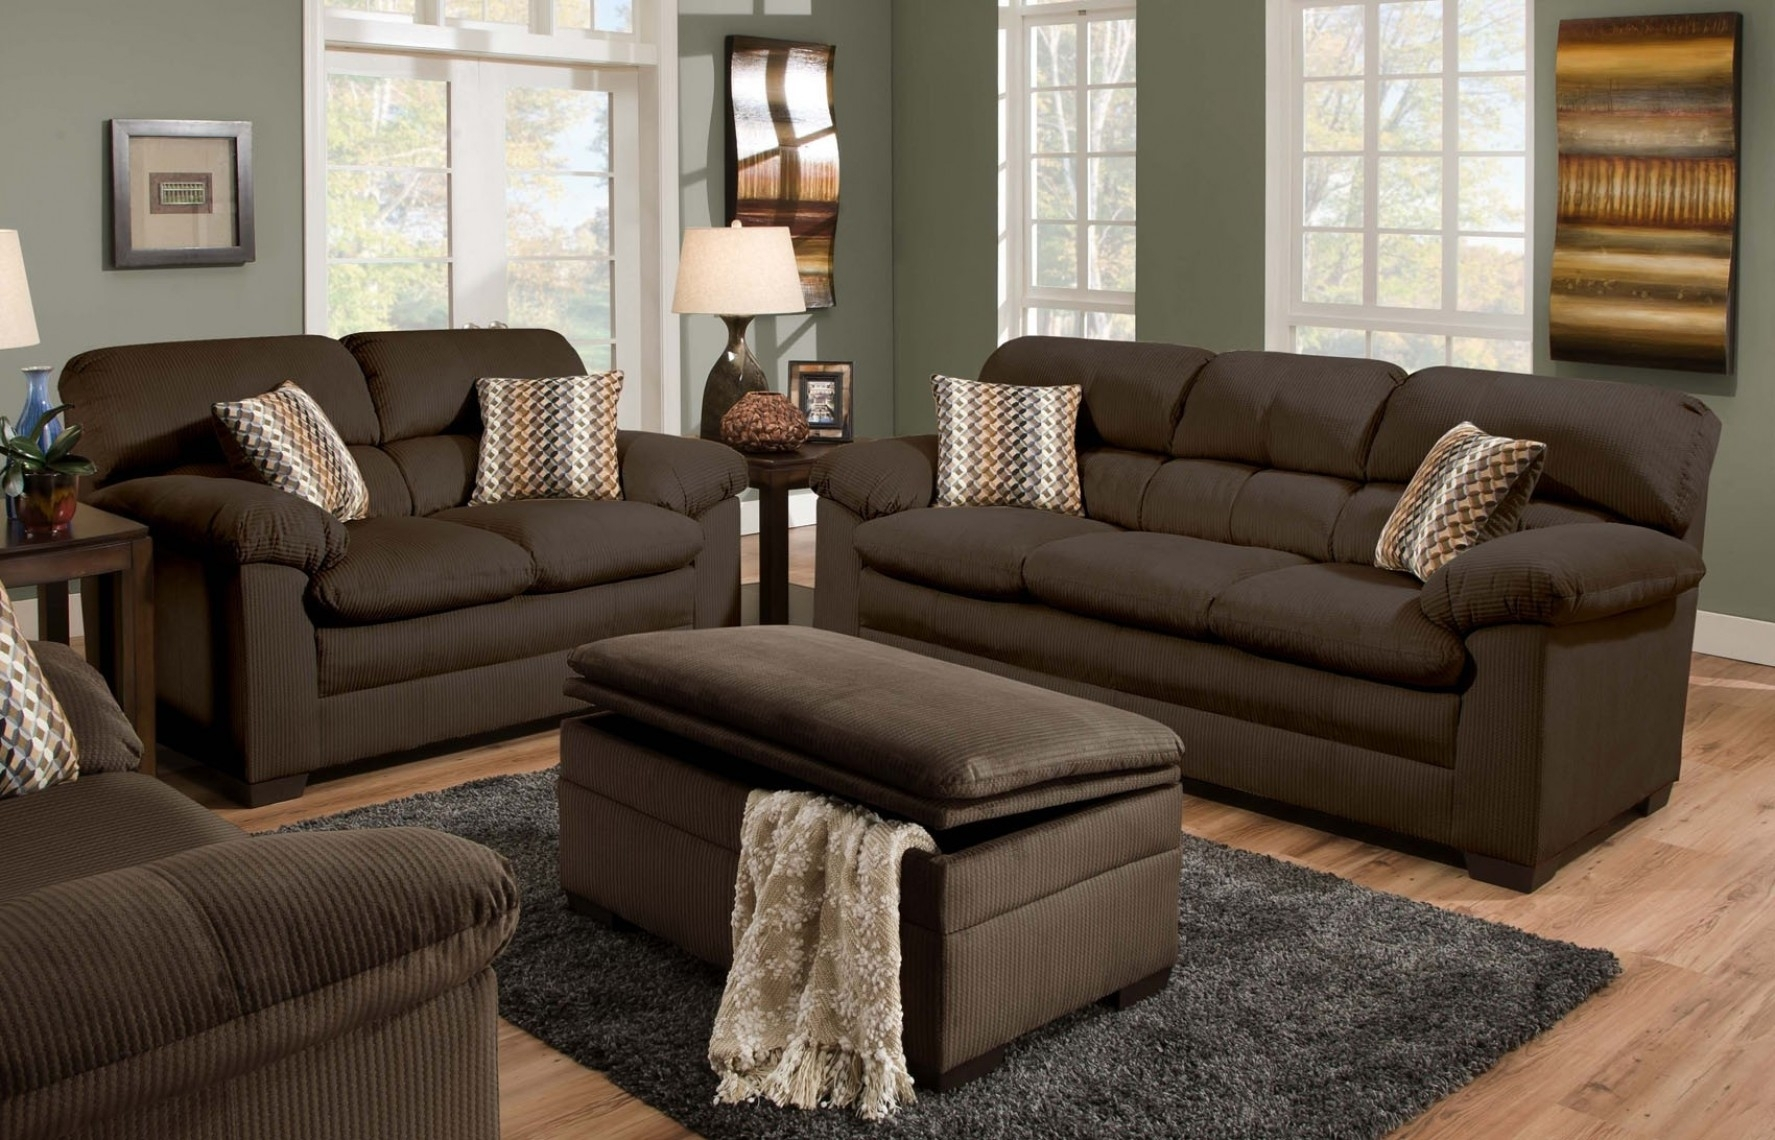 Cappuccino Sectional Sofa Set Having Pillow Arms Details Also With Sofas With Ottoman (Image 4 of 10)